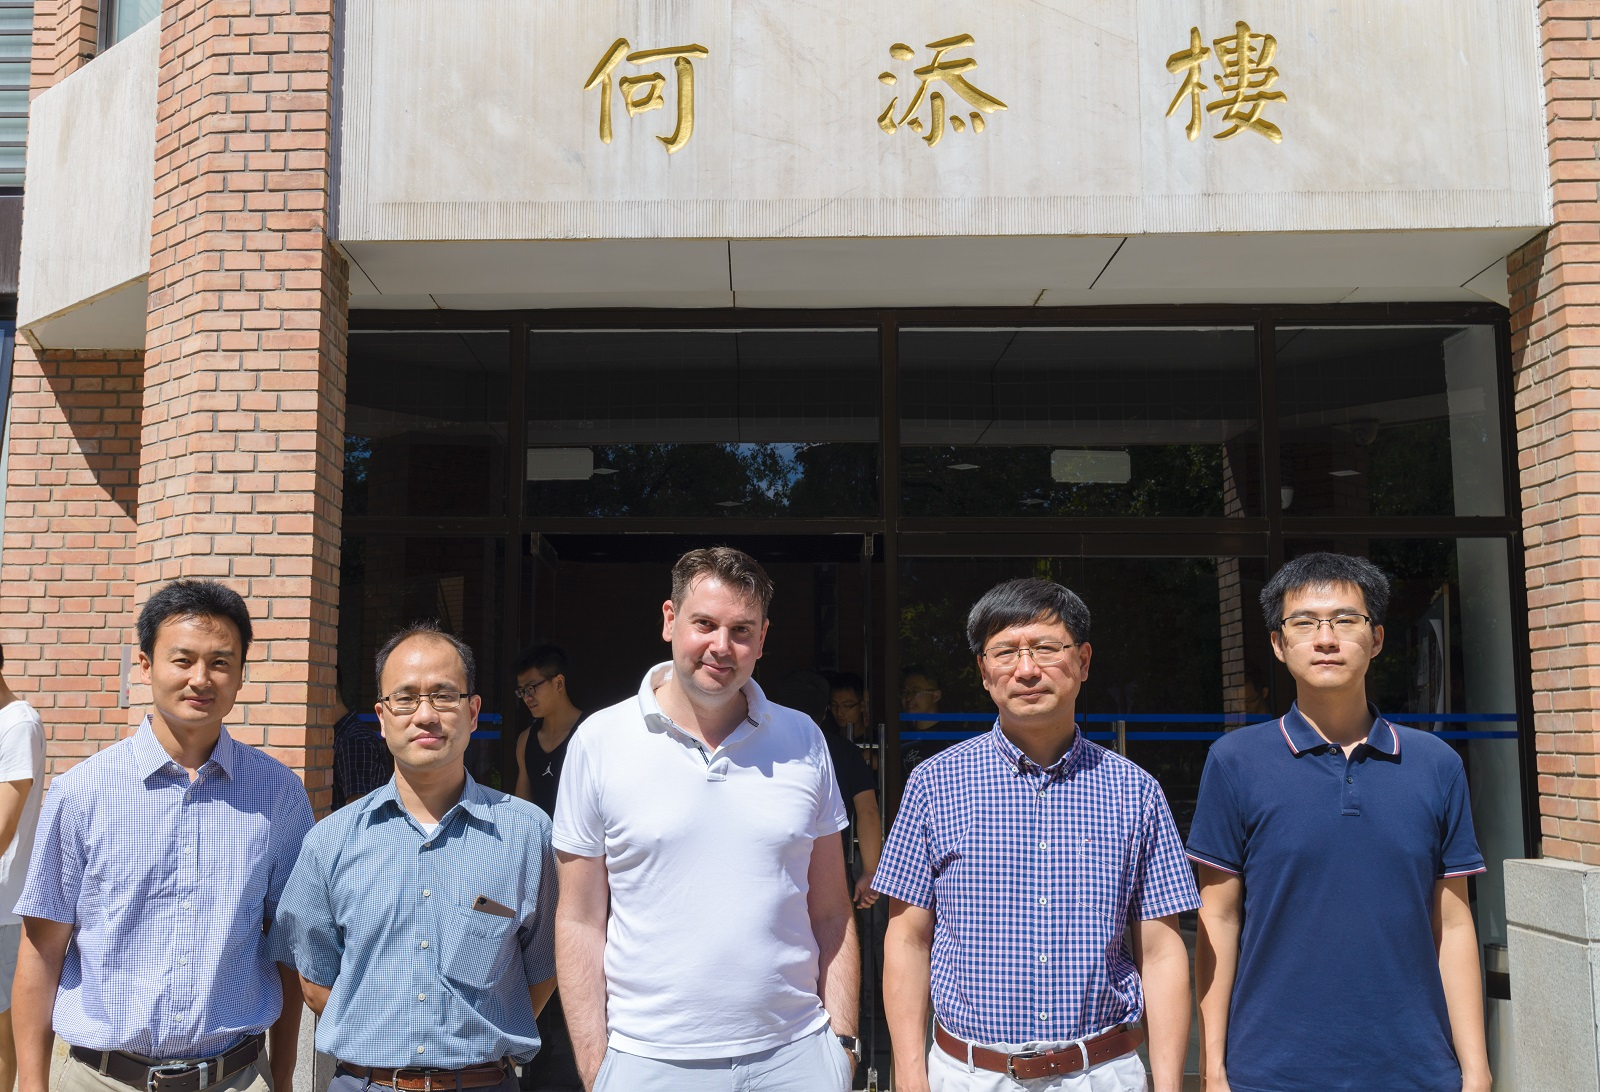 Prof. Jean-François Lutz visited Tsinghua University and gave a lecture